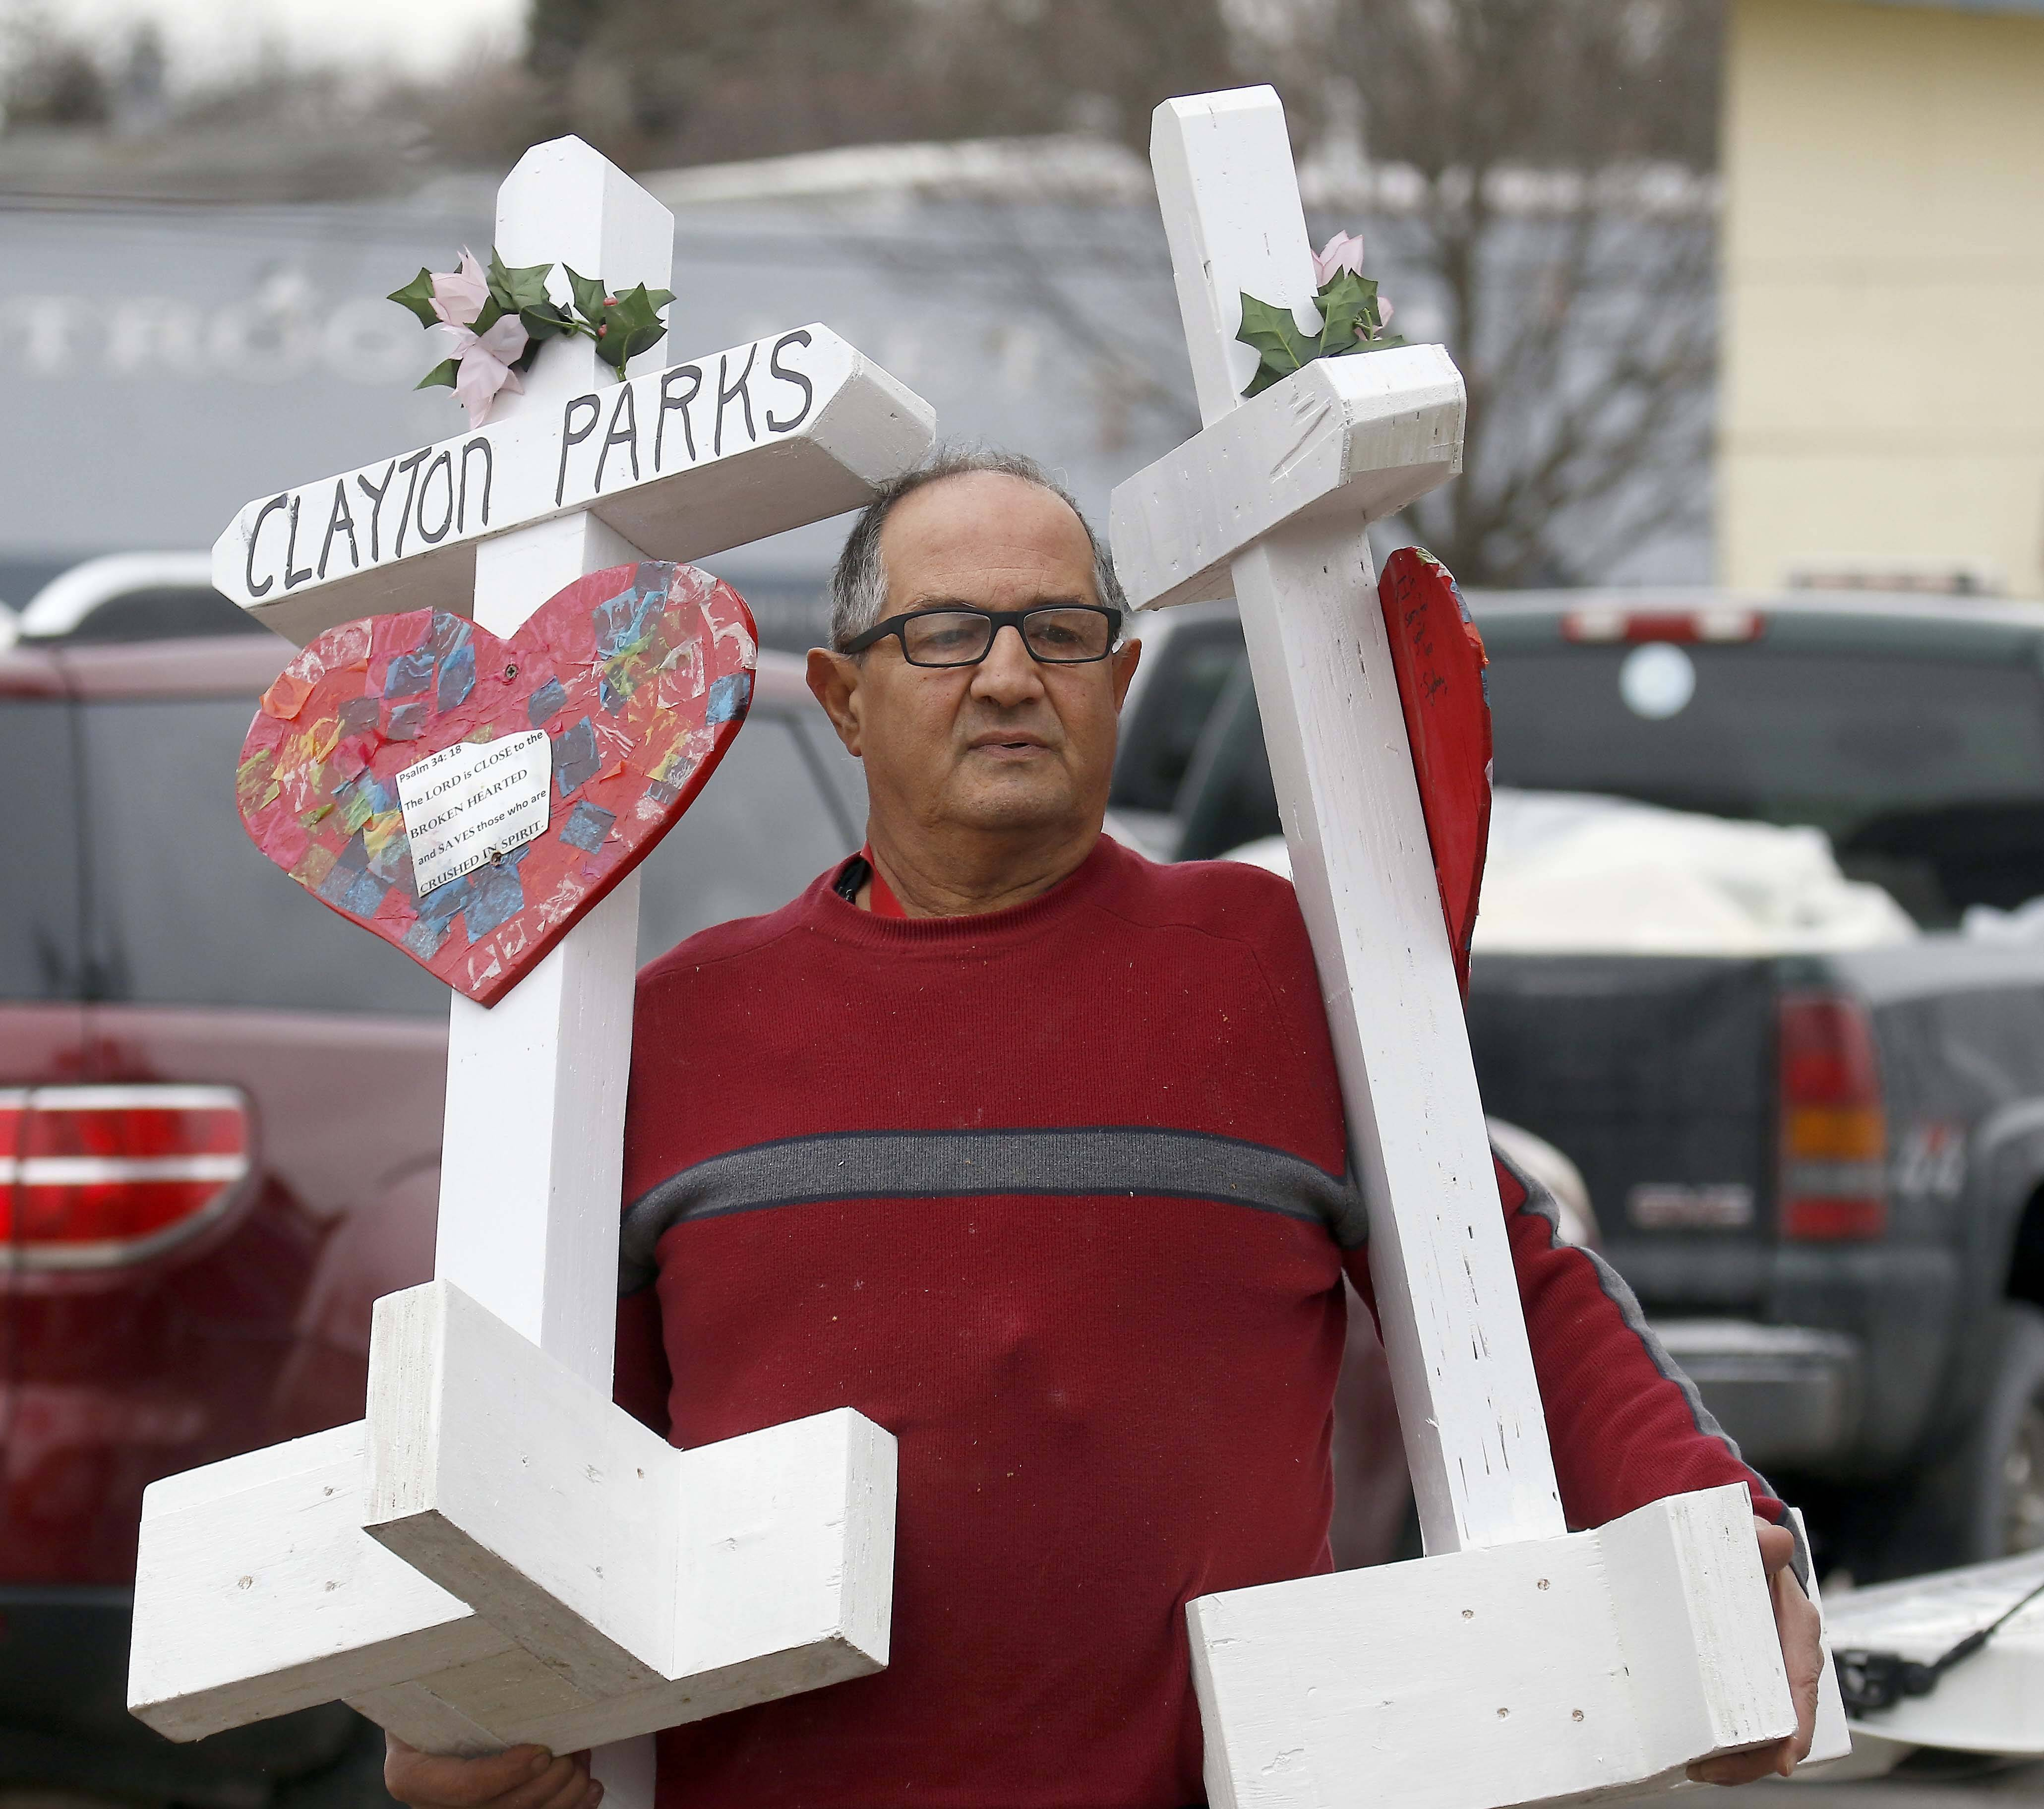 'It's happening in my town,' Aurora man says of making his 26,275th to 26,279th white crosses